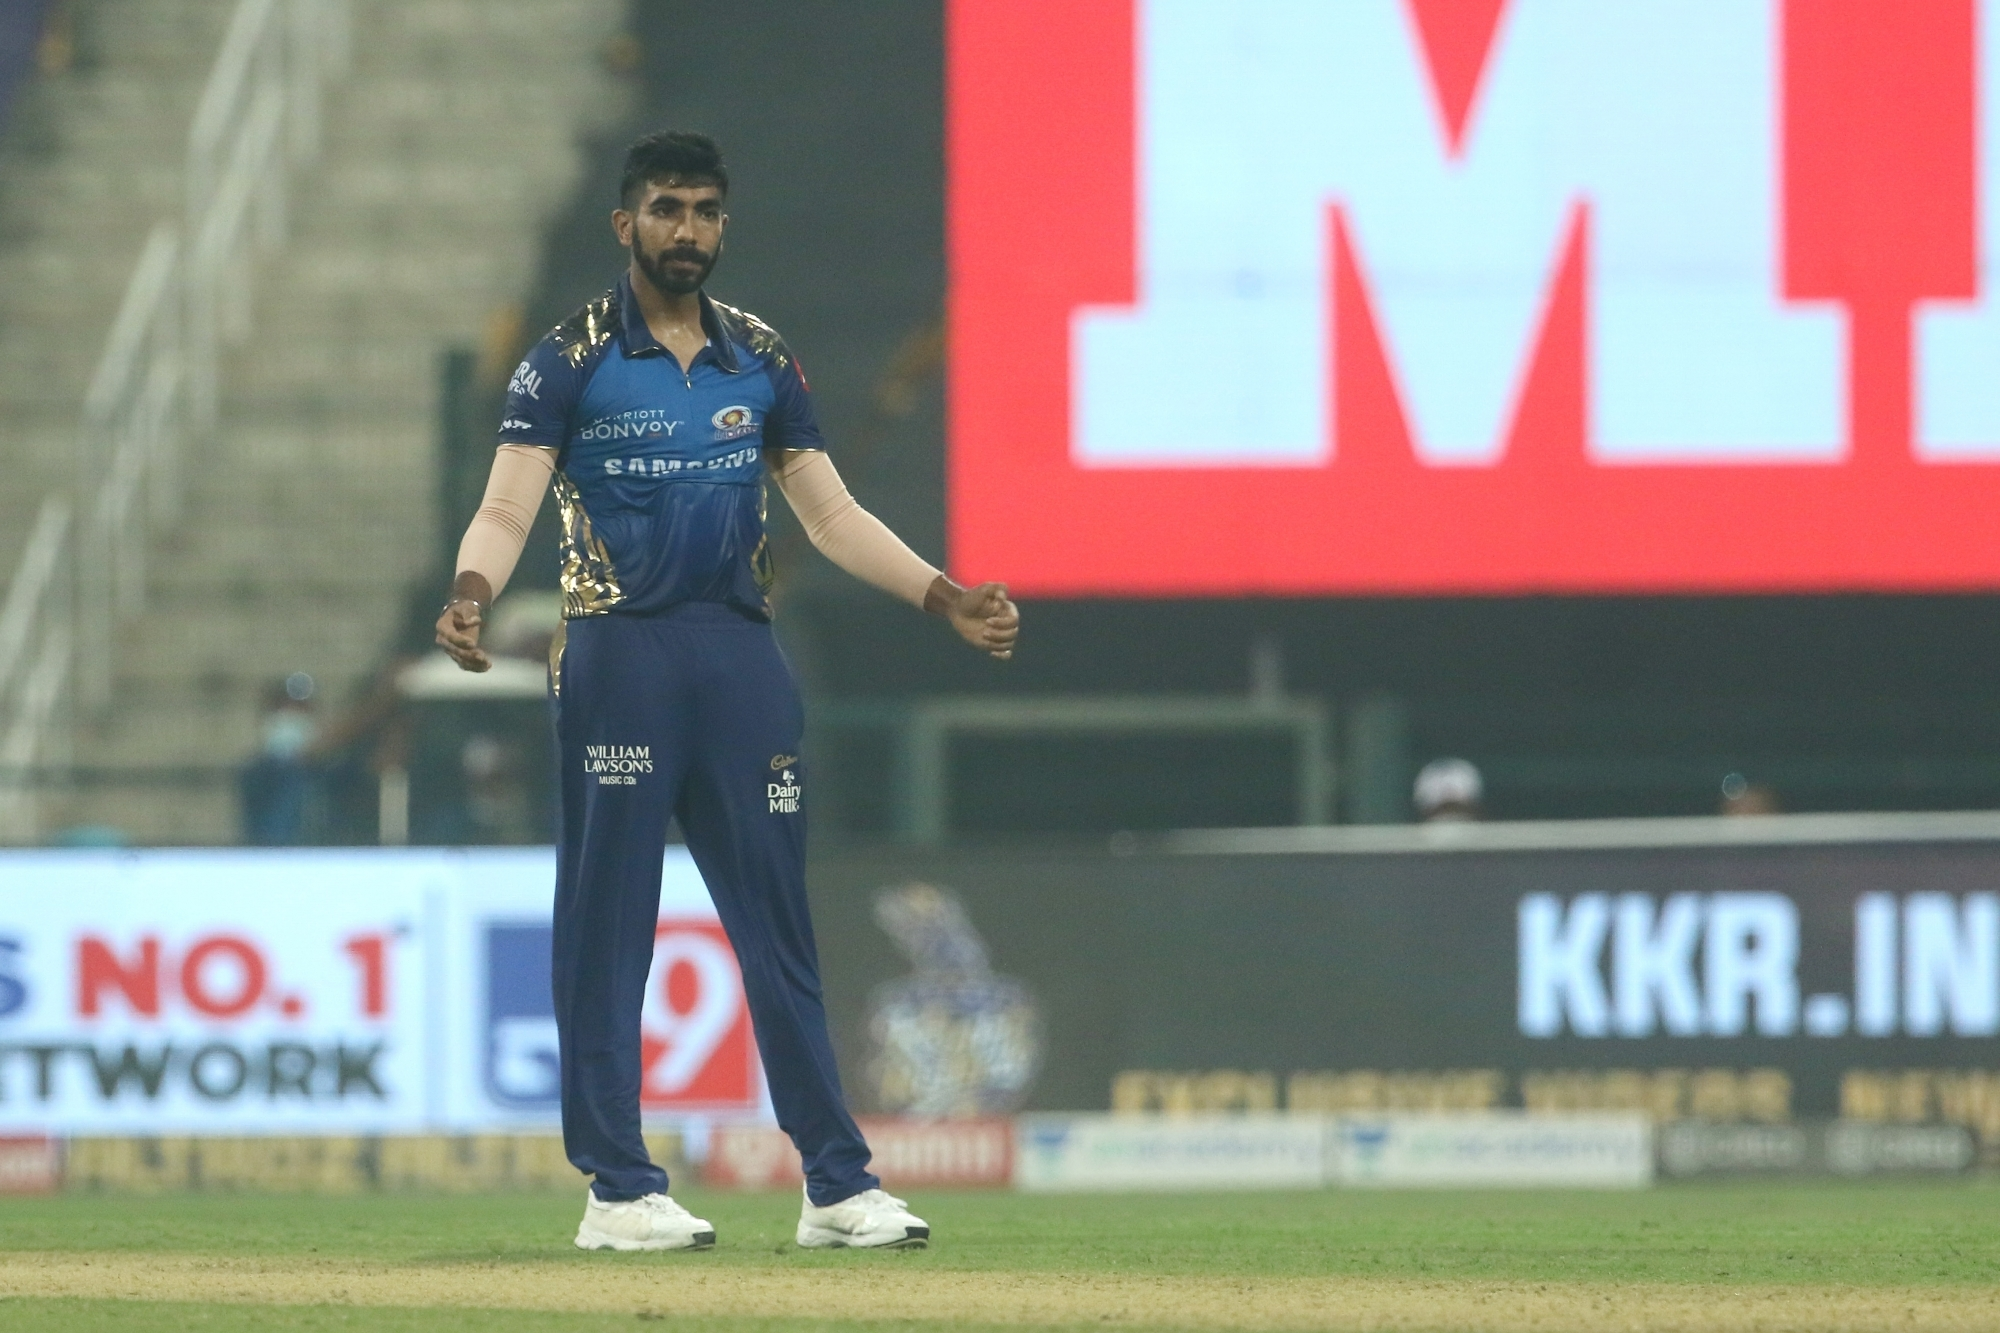 MI will be hoping that Jasprit Bumrah gets into top form quickly | IANS